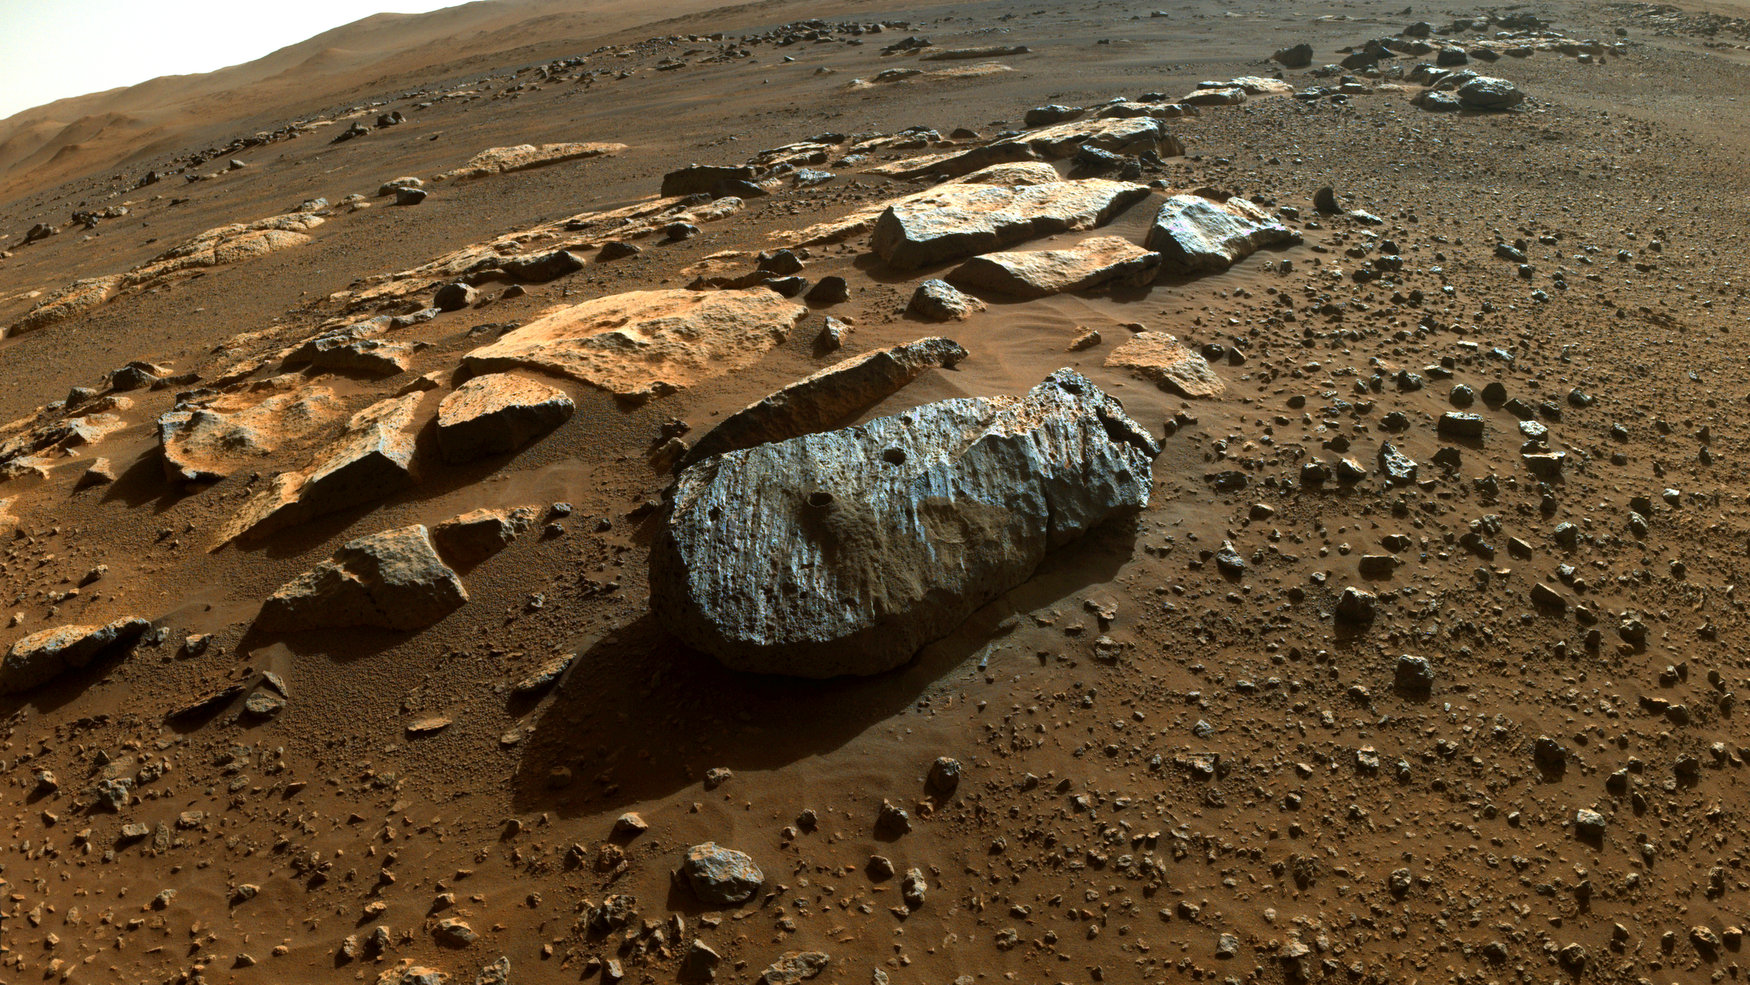 Mars rover rocks reveal 'potentially habitable sustained environment'